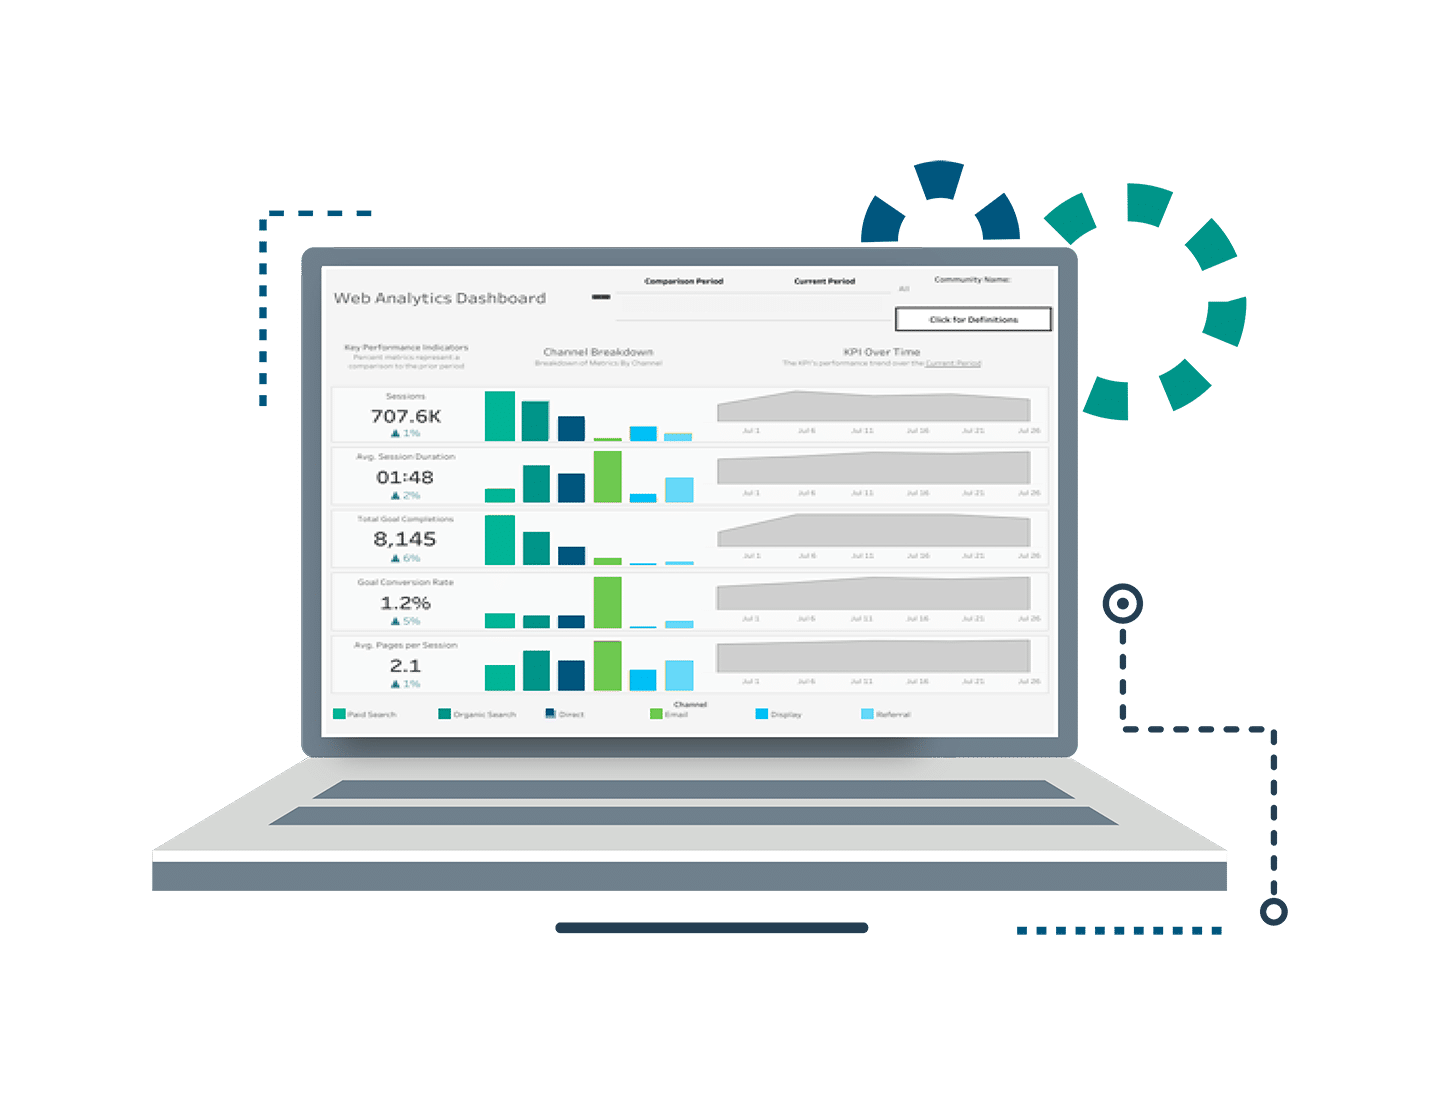 An example of the Web Analytics Dashboard inside the Attane Insights, a reporting solution